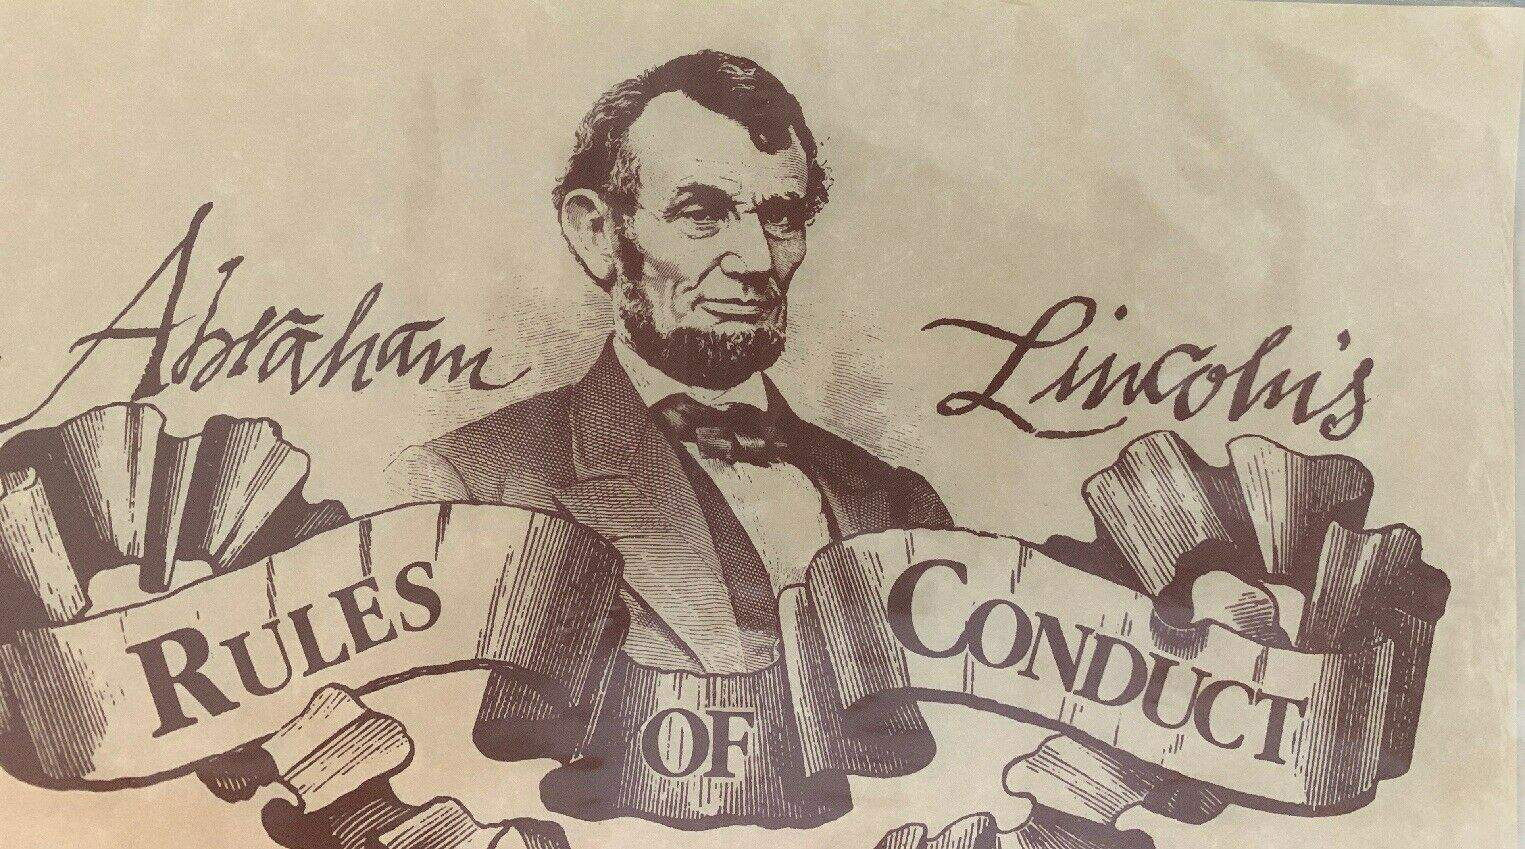 Abraham Lincoln's Rules of Conduct - Parchment Poster